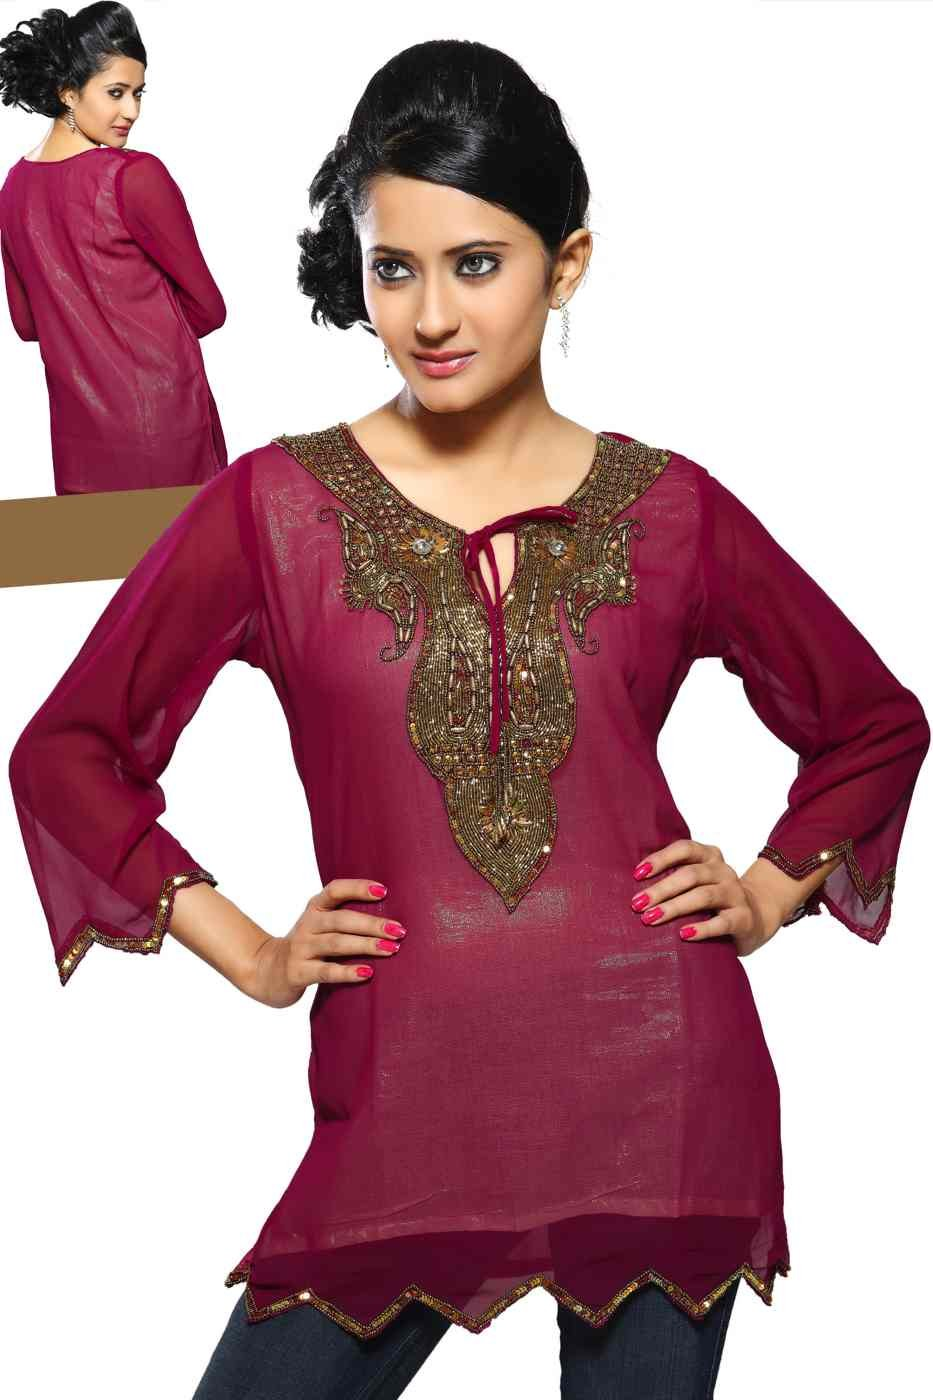 Indian Selections - Fine Georgette Kurti with handcrafted neckline and liner - Large